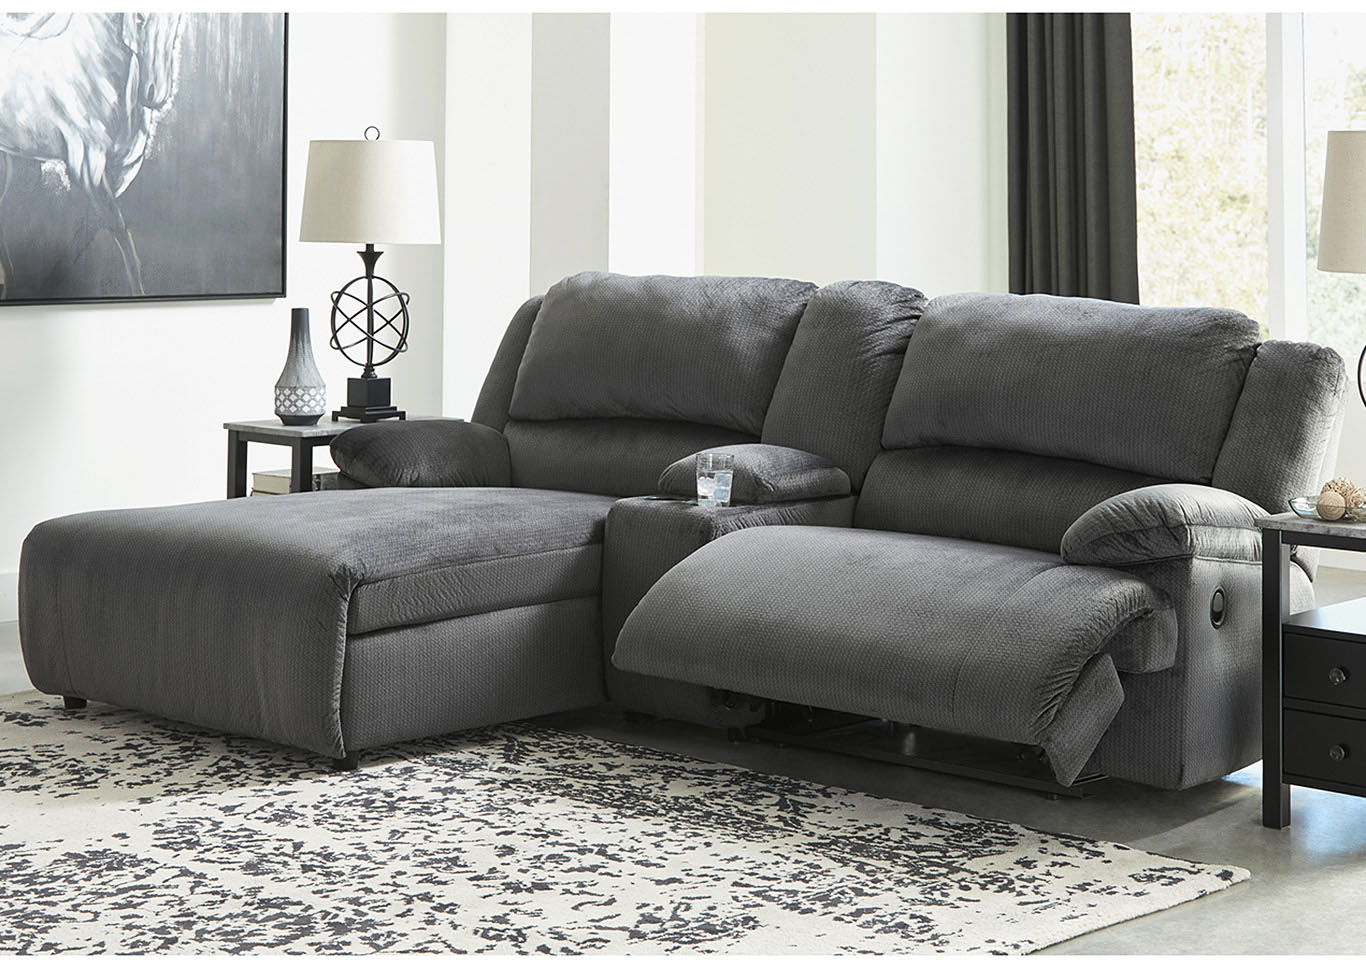 Clonmel Charcoal 3 Piece LAF Power Chaise Sectional w/Console,Signature Design By Ashley